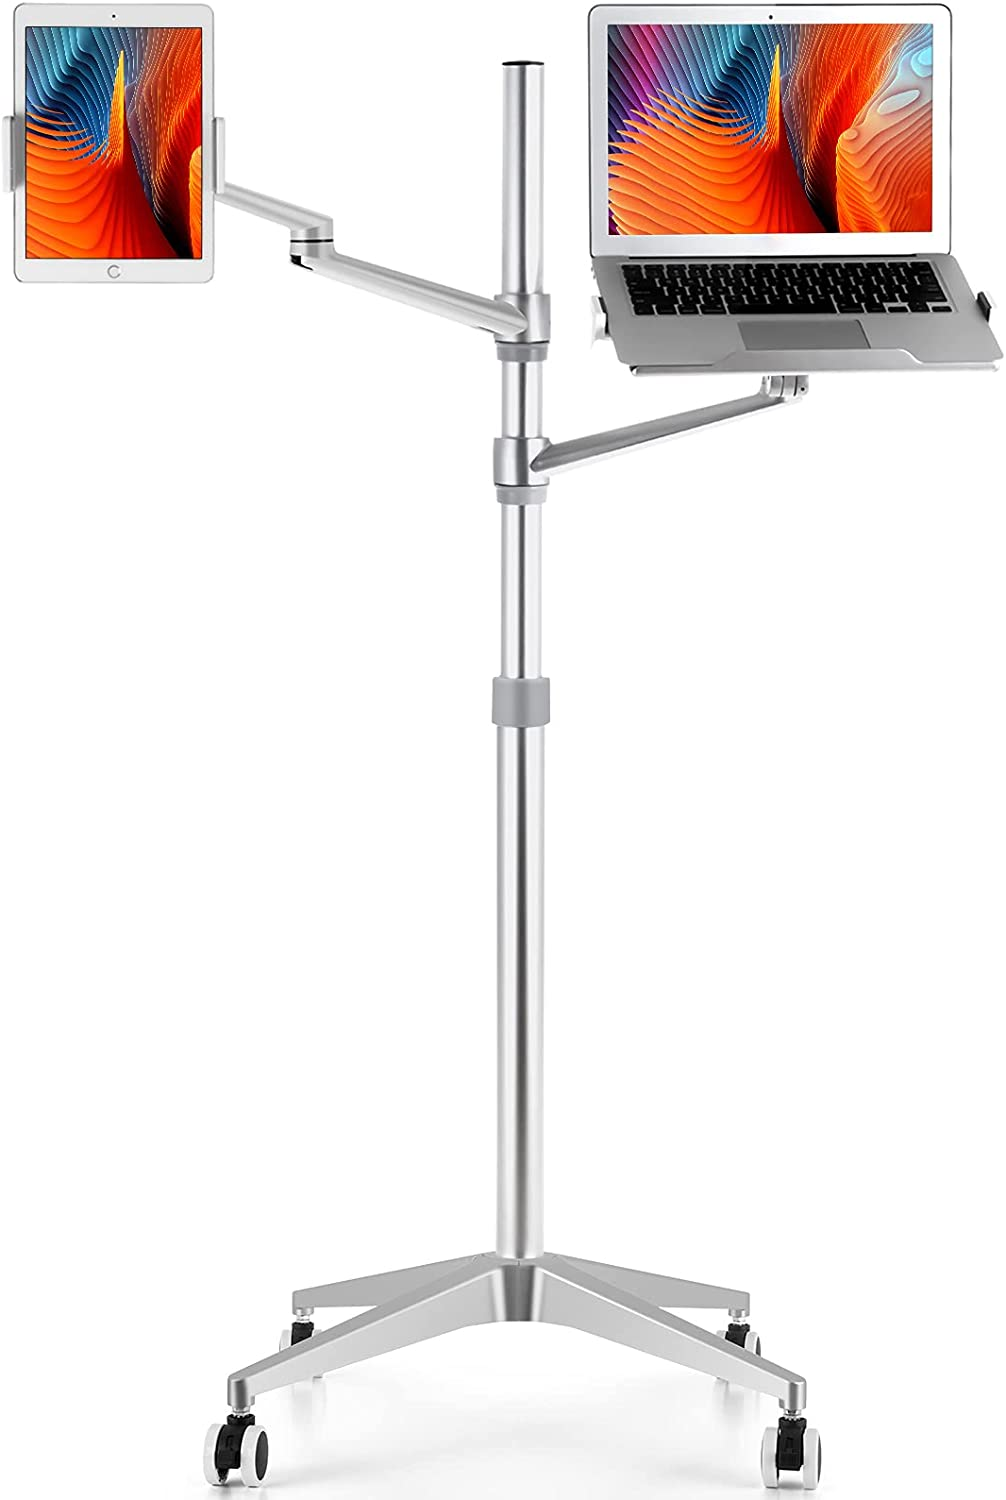 viozon Tablet and Laptop Floor 2-in-1 Max 79% OFF Stand Adjustable Rolling Max 54% OFF